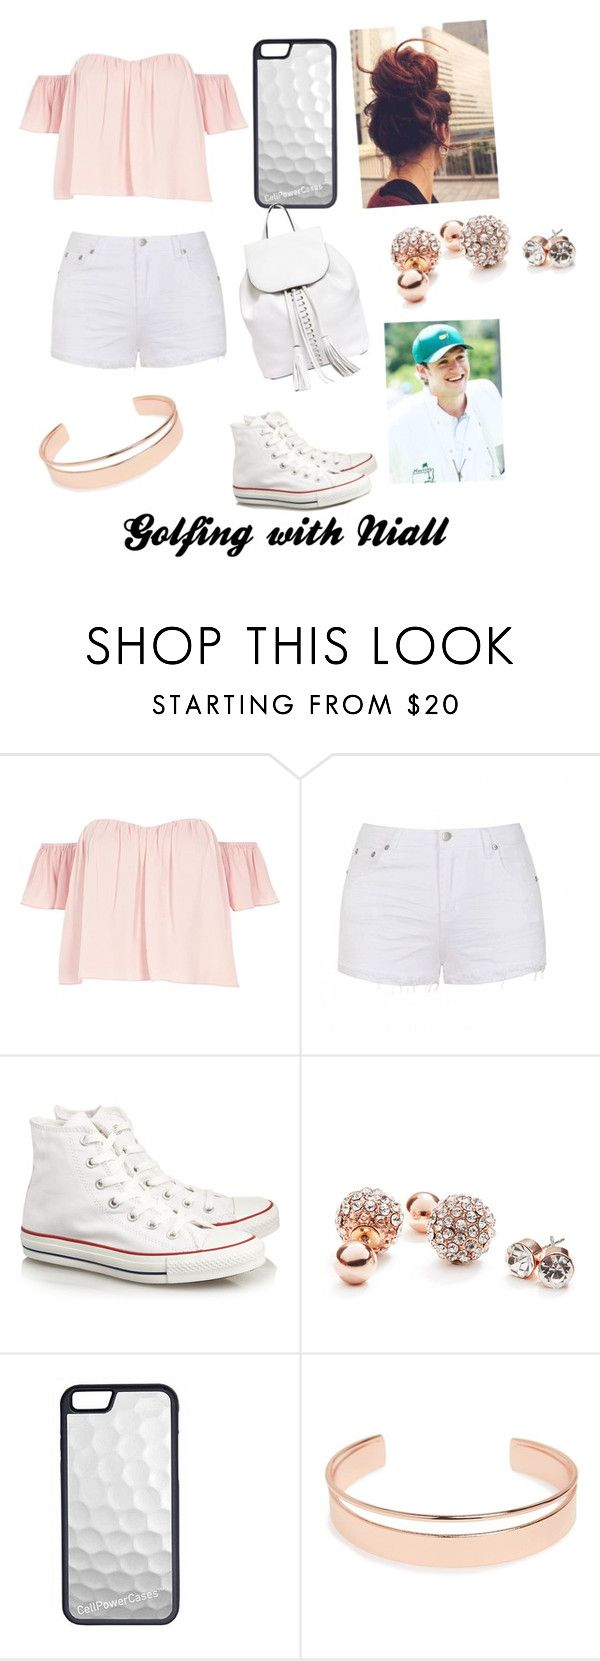 """""""Golfing with Niall"""" by razamaheen-1 on Polyvore featuring River Island, Ally Fashion, Converse, GUESS, Augusta, CellPowerCases, Leith and Rebecca Minkoff"""